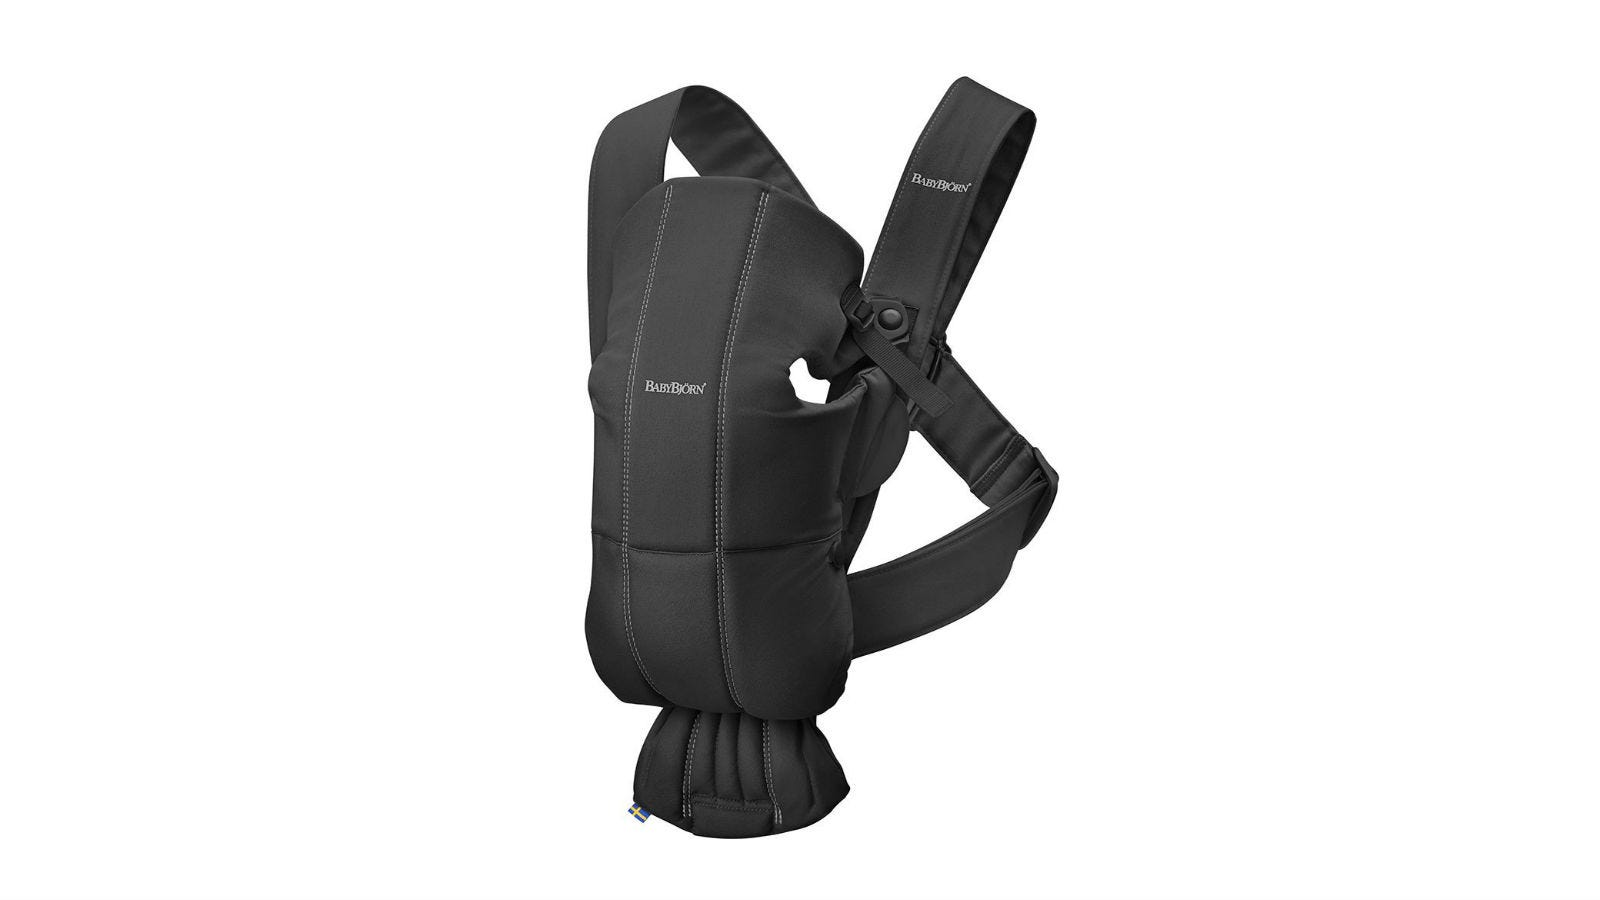 The BABYBJÖRN Baby Carrier Mini.